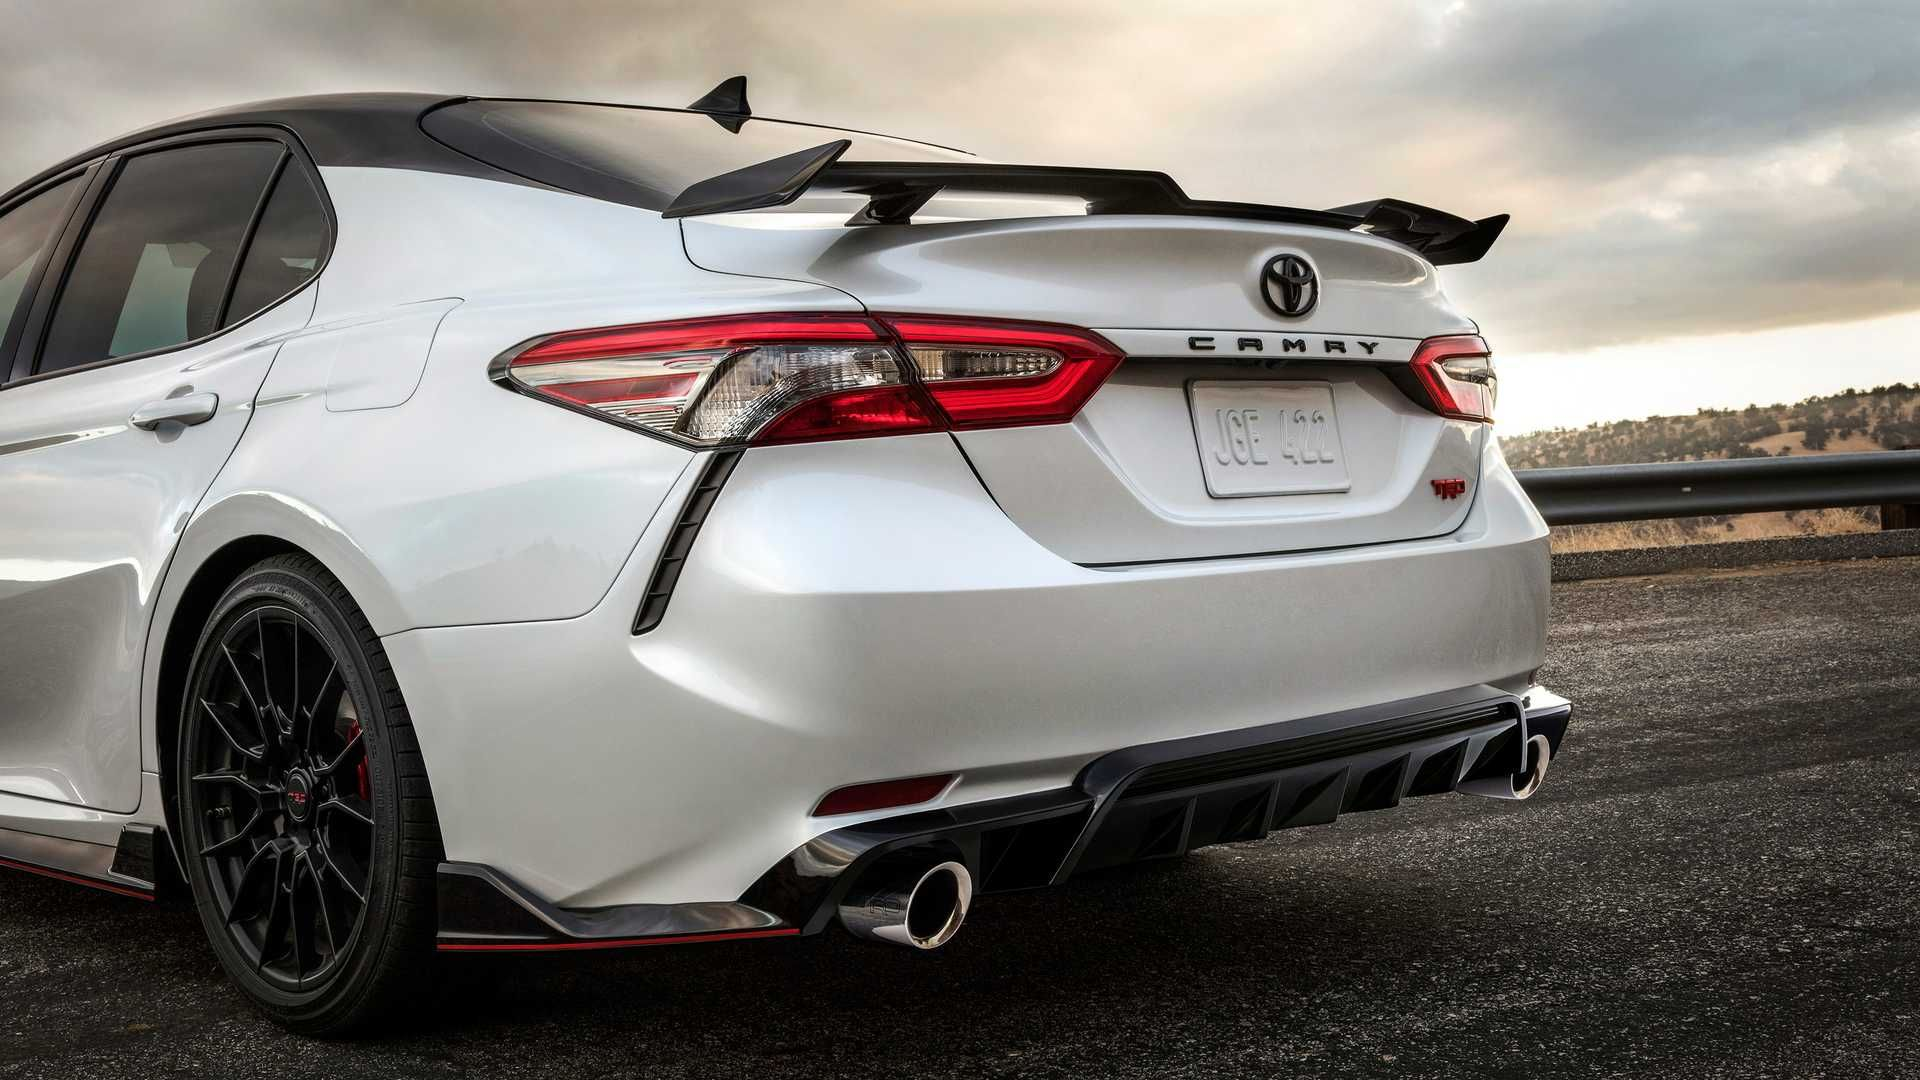 The Rear End Of Sportier New 2020 Toyota Camry Trd Toyotacamry Anese Anesecars An Toyotacars